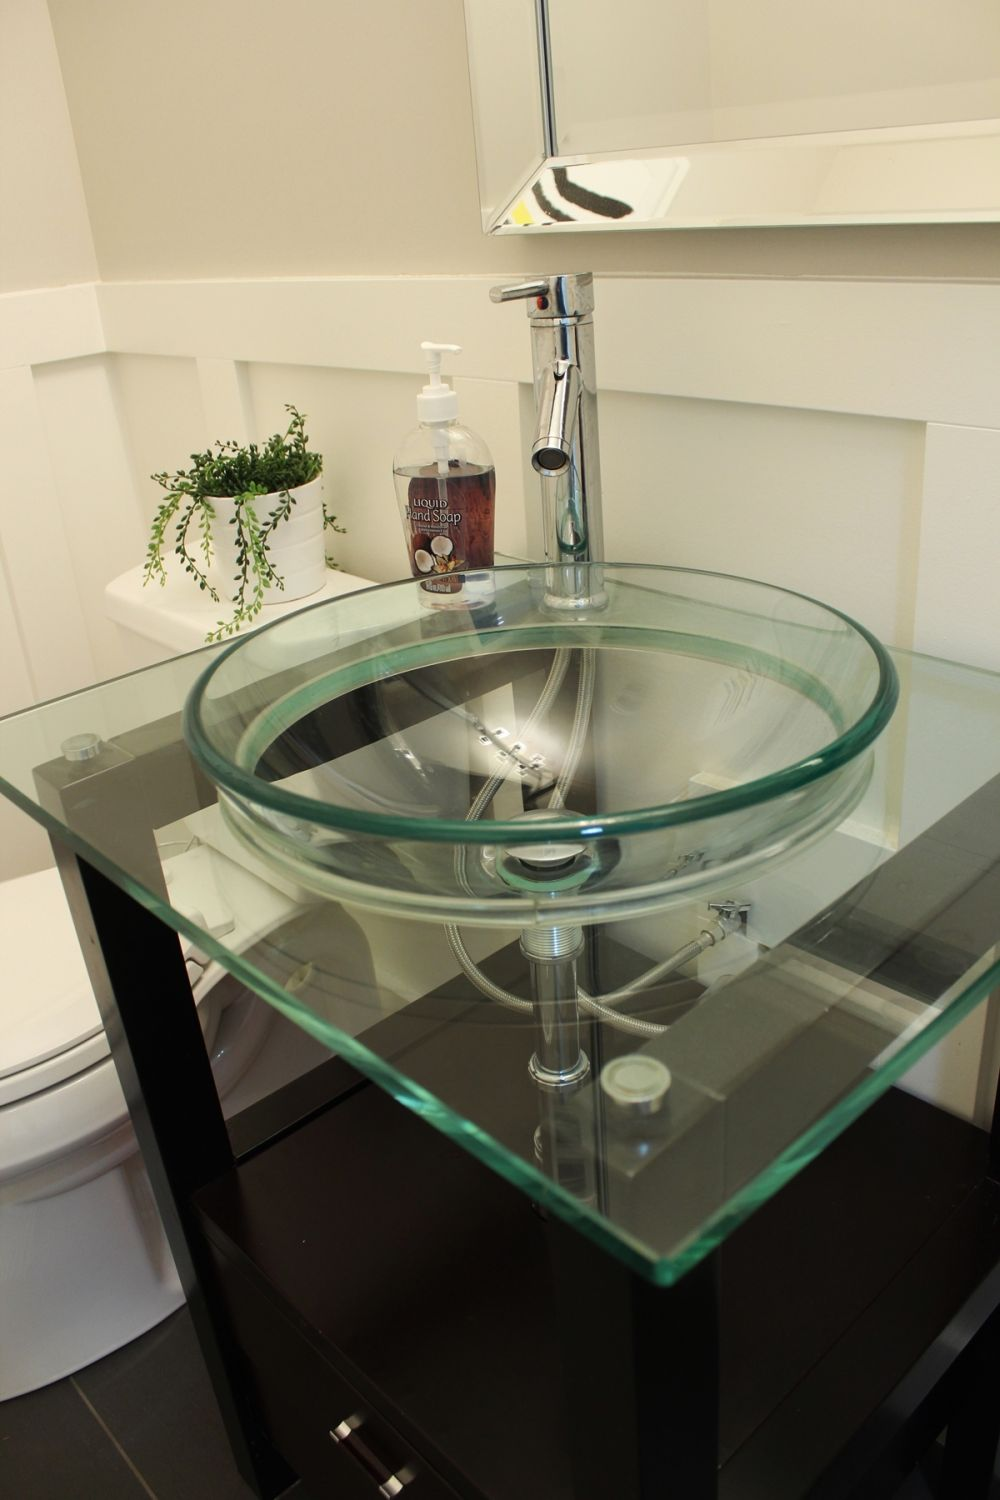 glass bathroom sinks bowls how to decorate a bathroom without clutter 18465